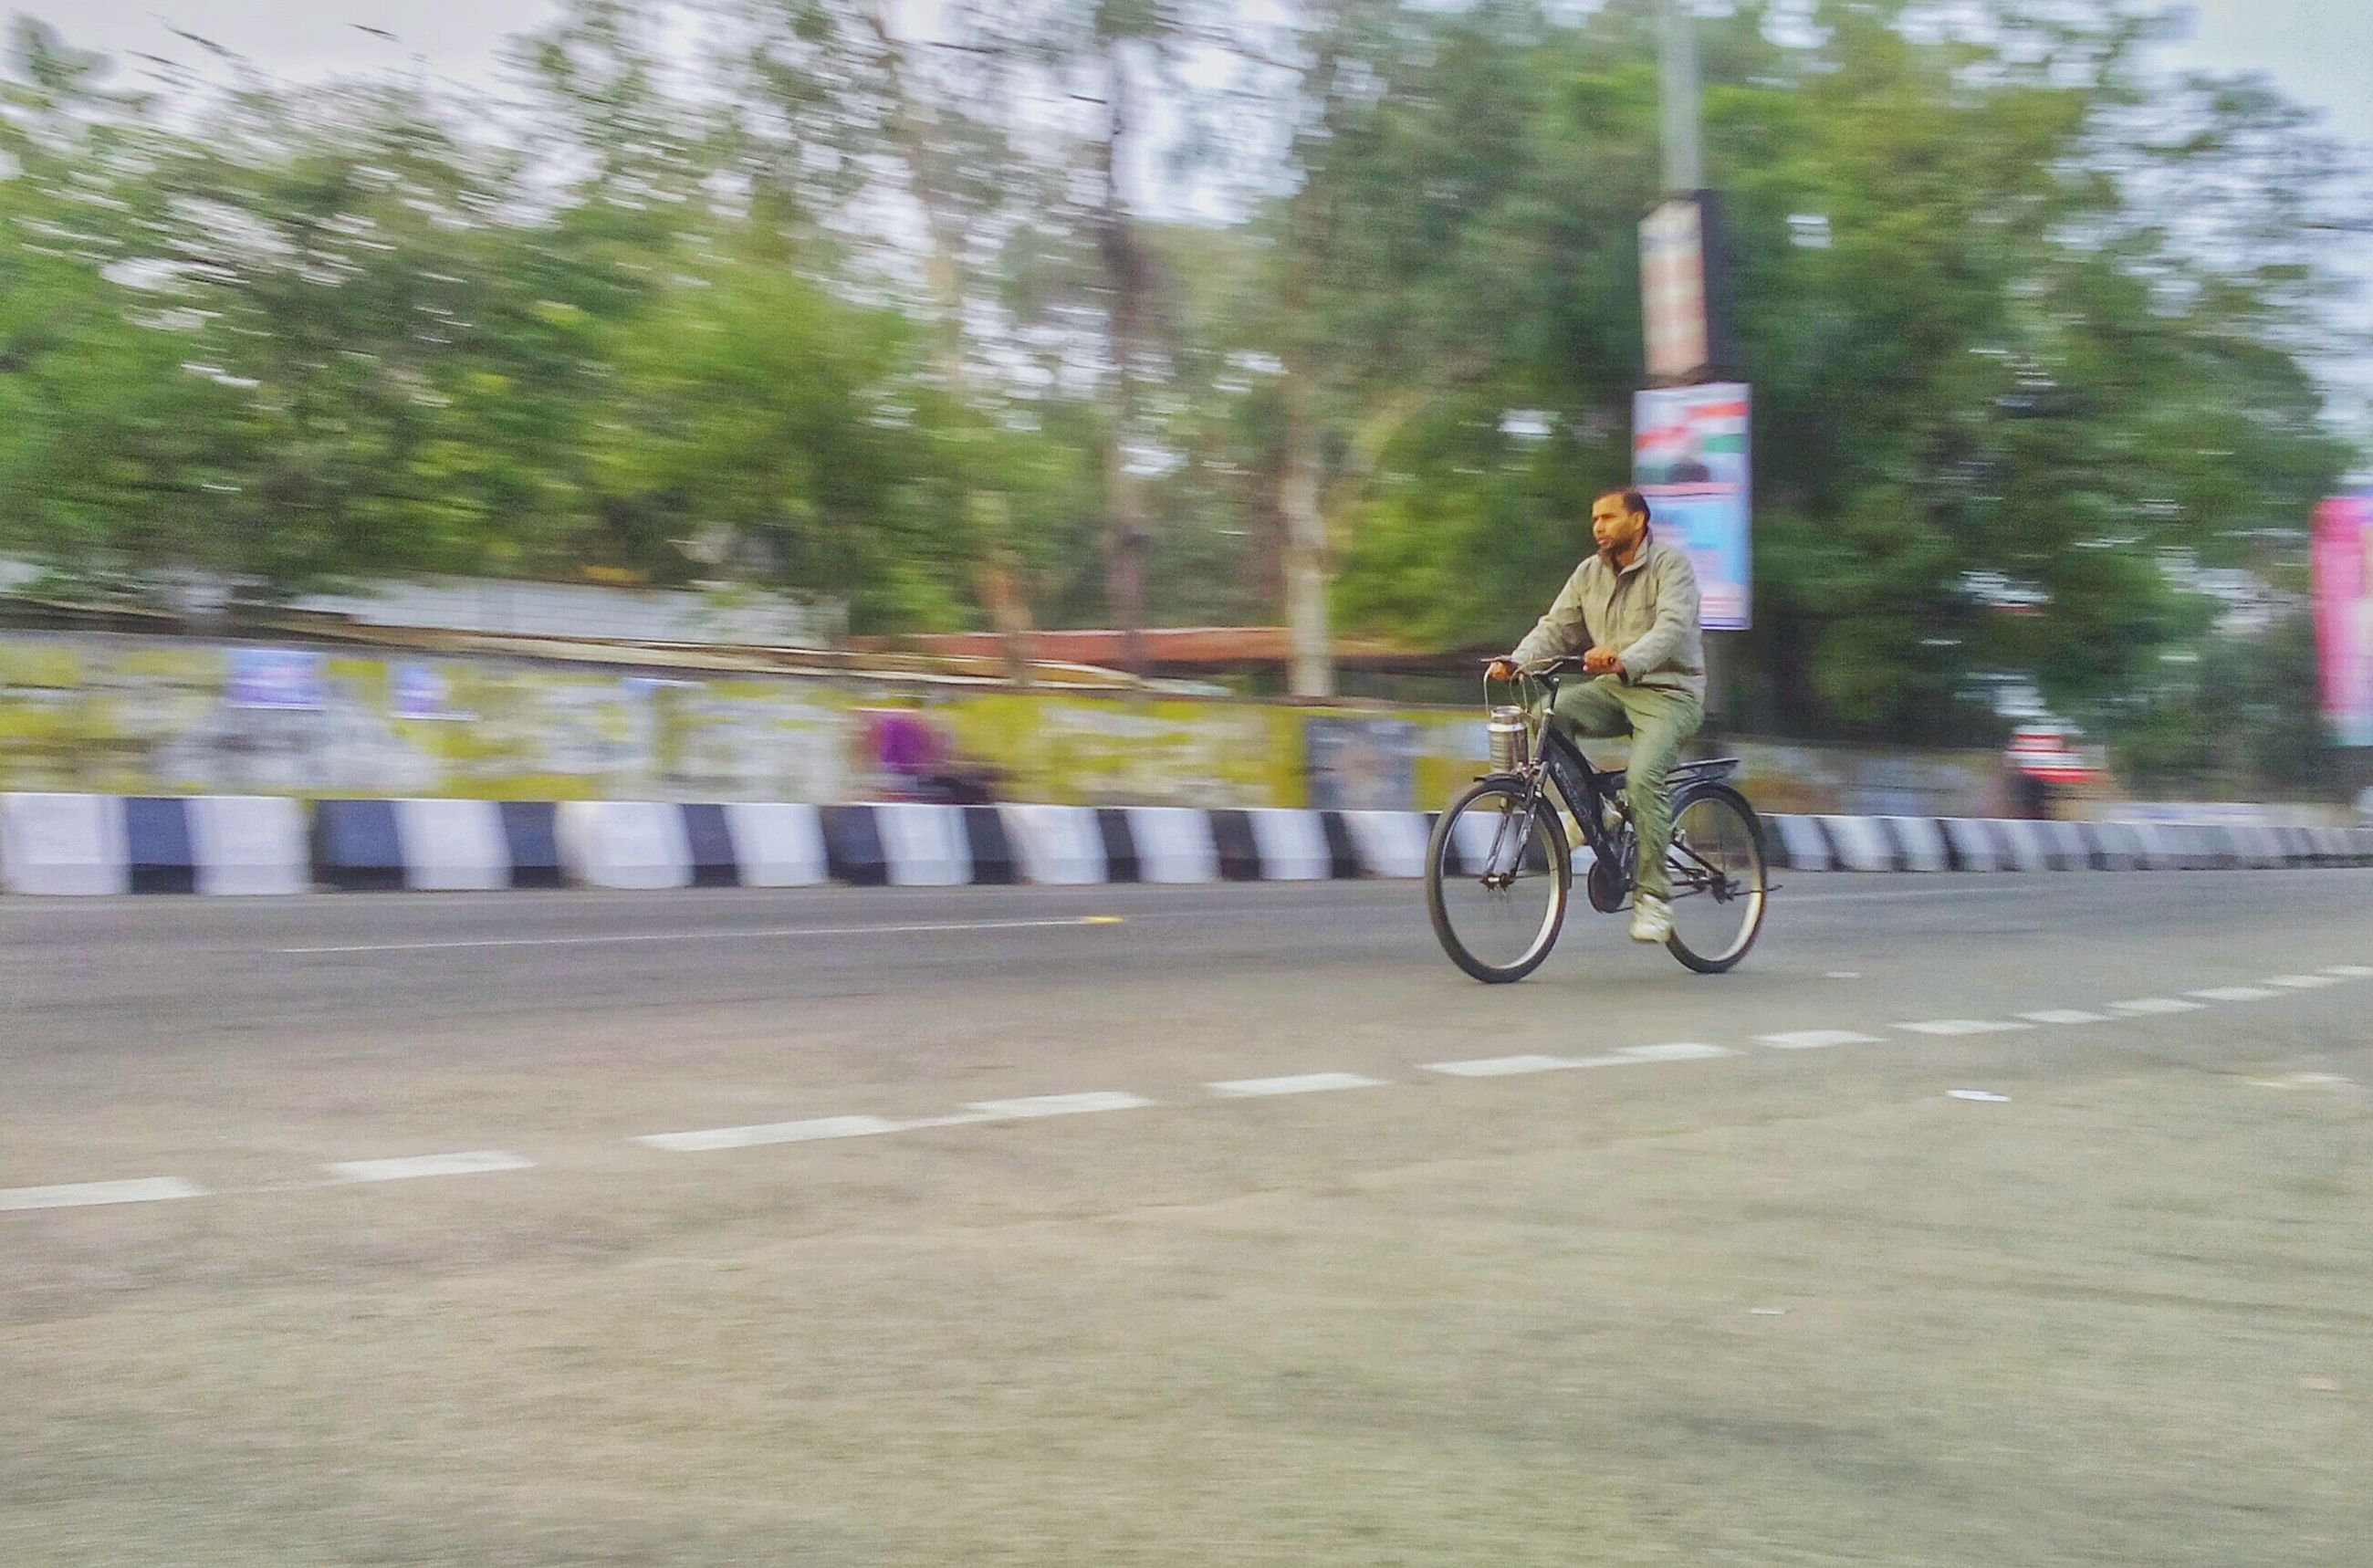 transportation, blurred motion, speed, motion, road, real people, riding, bicycle, land vehicle, mode of transport, one person, outdoors, day, tree, full length, nature, people